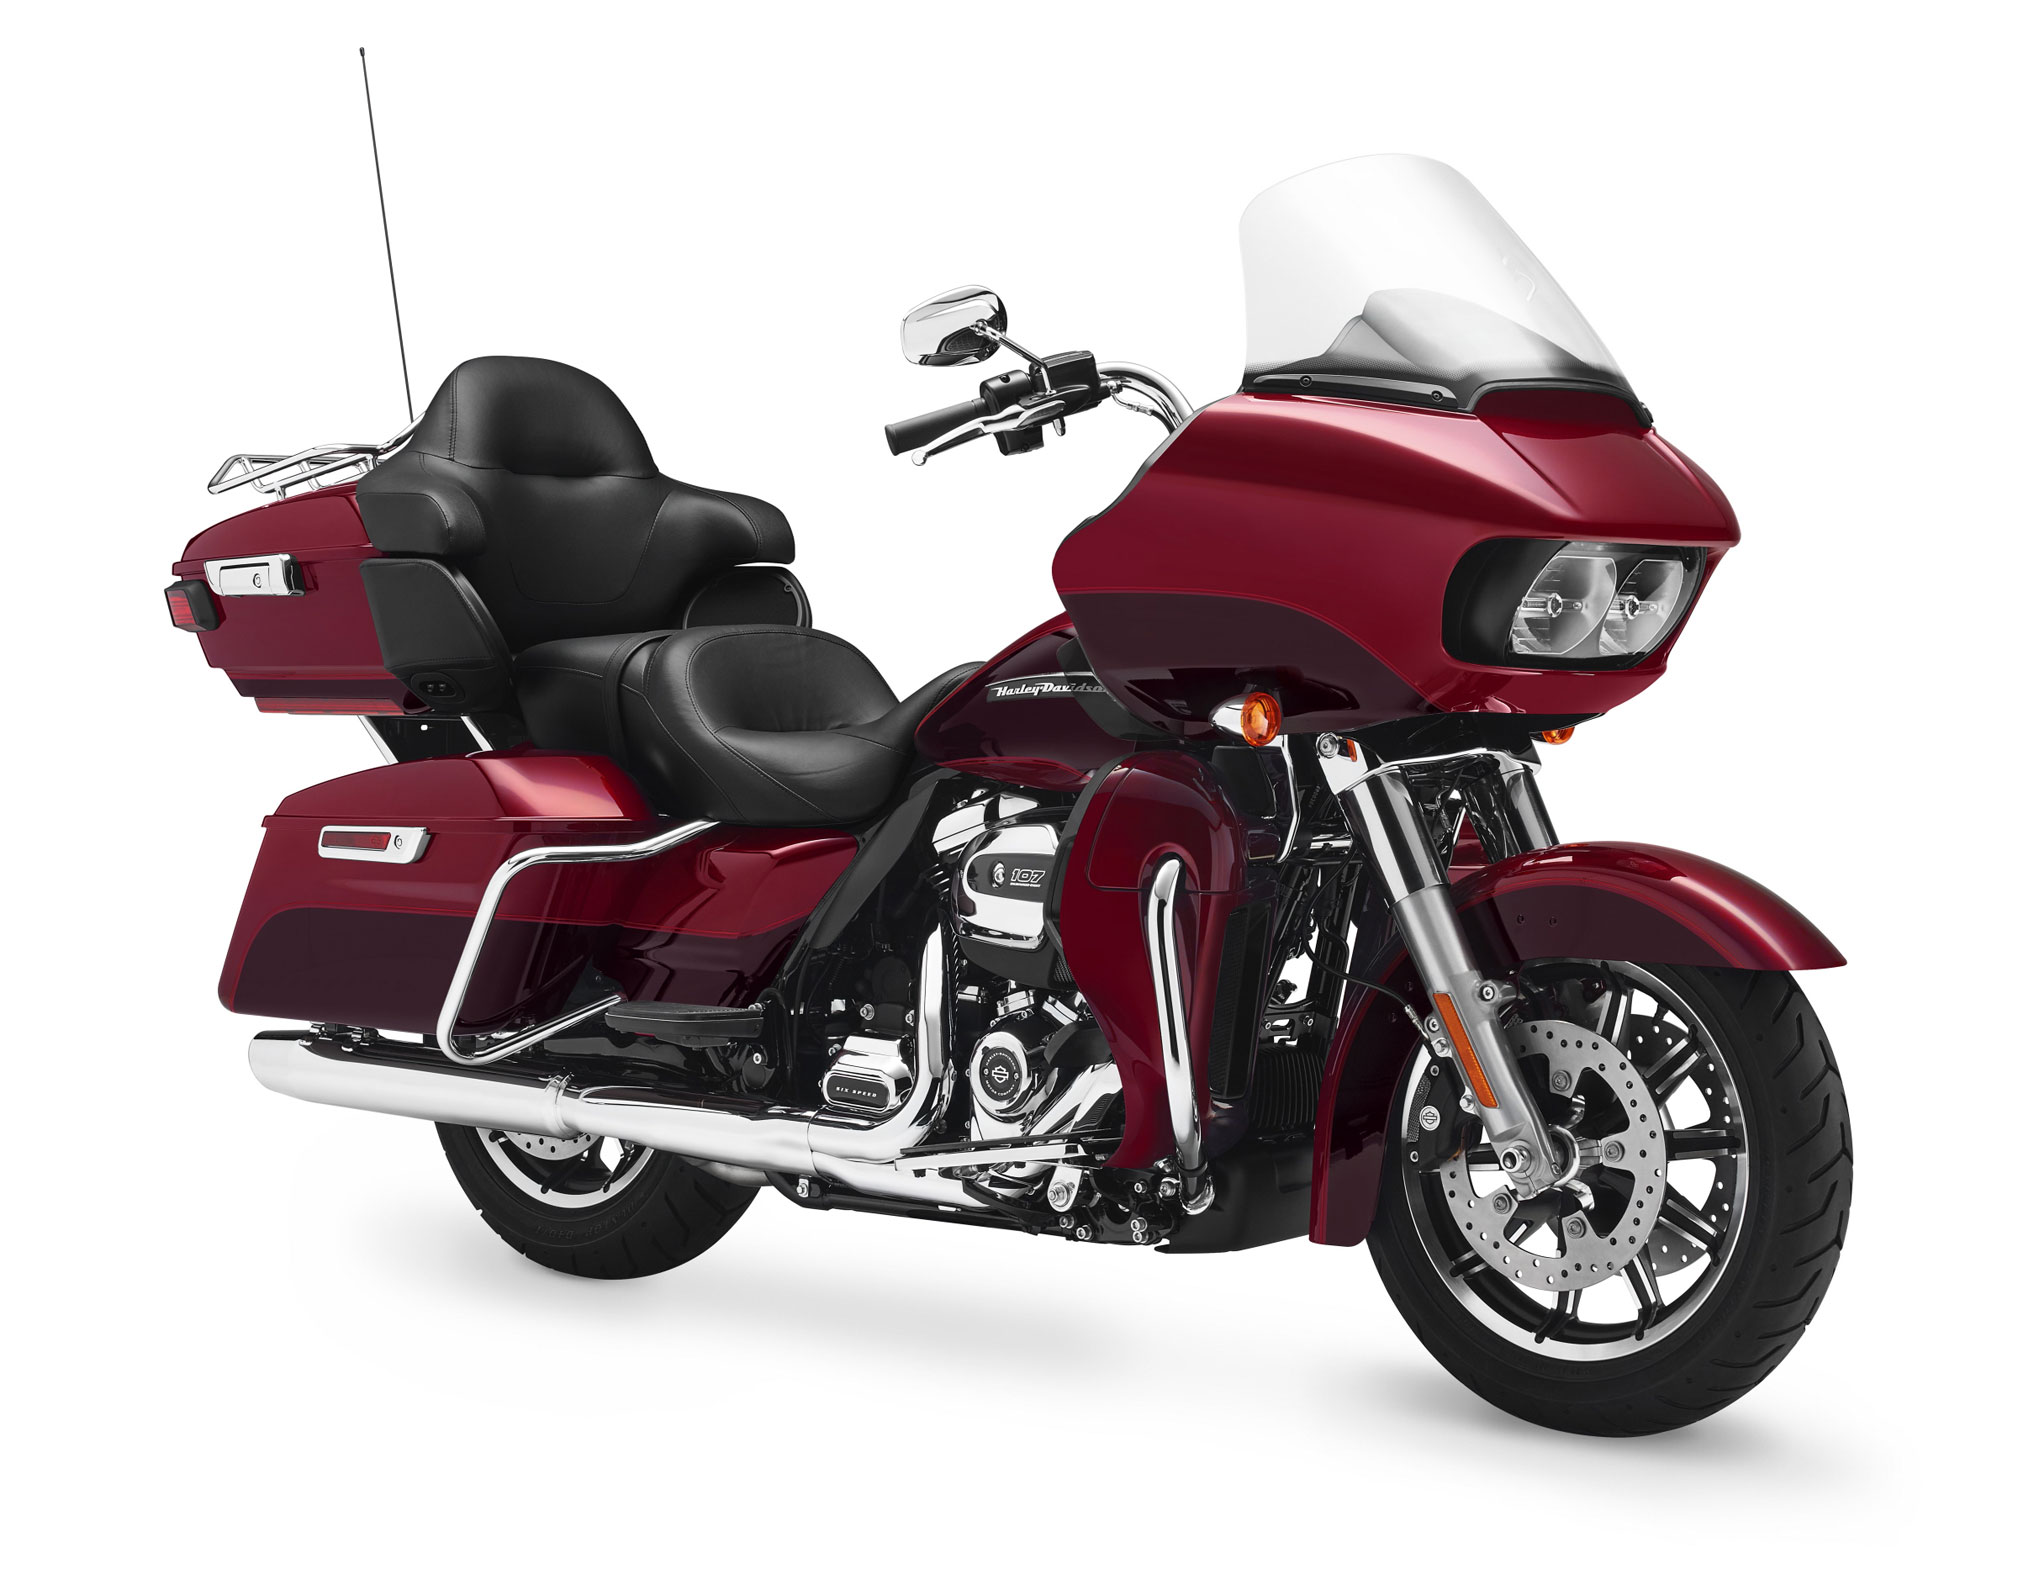 2018 Harley Davidson Road Glide Ultra Review Total Motorcycle